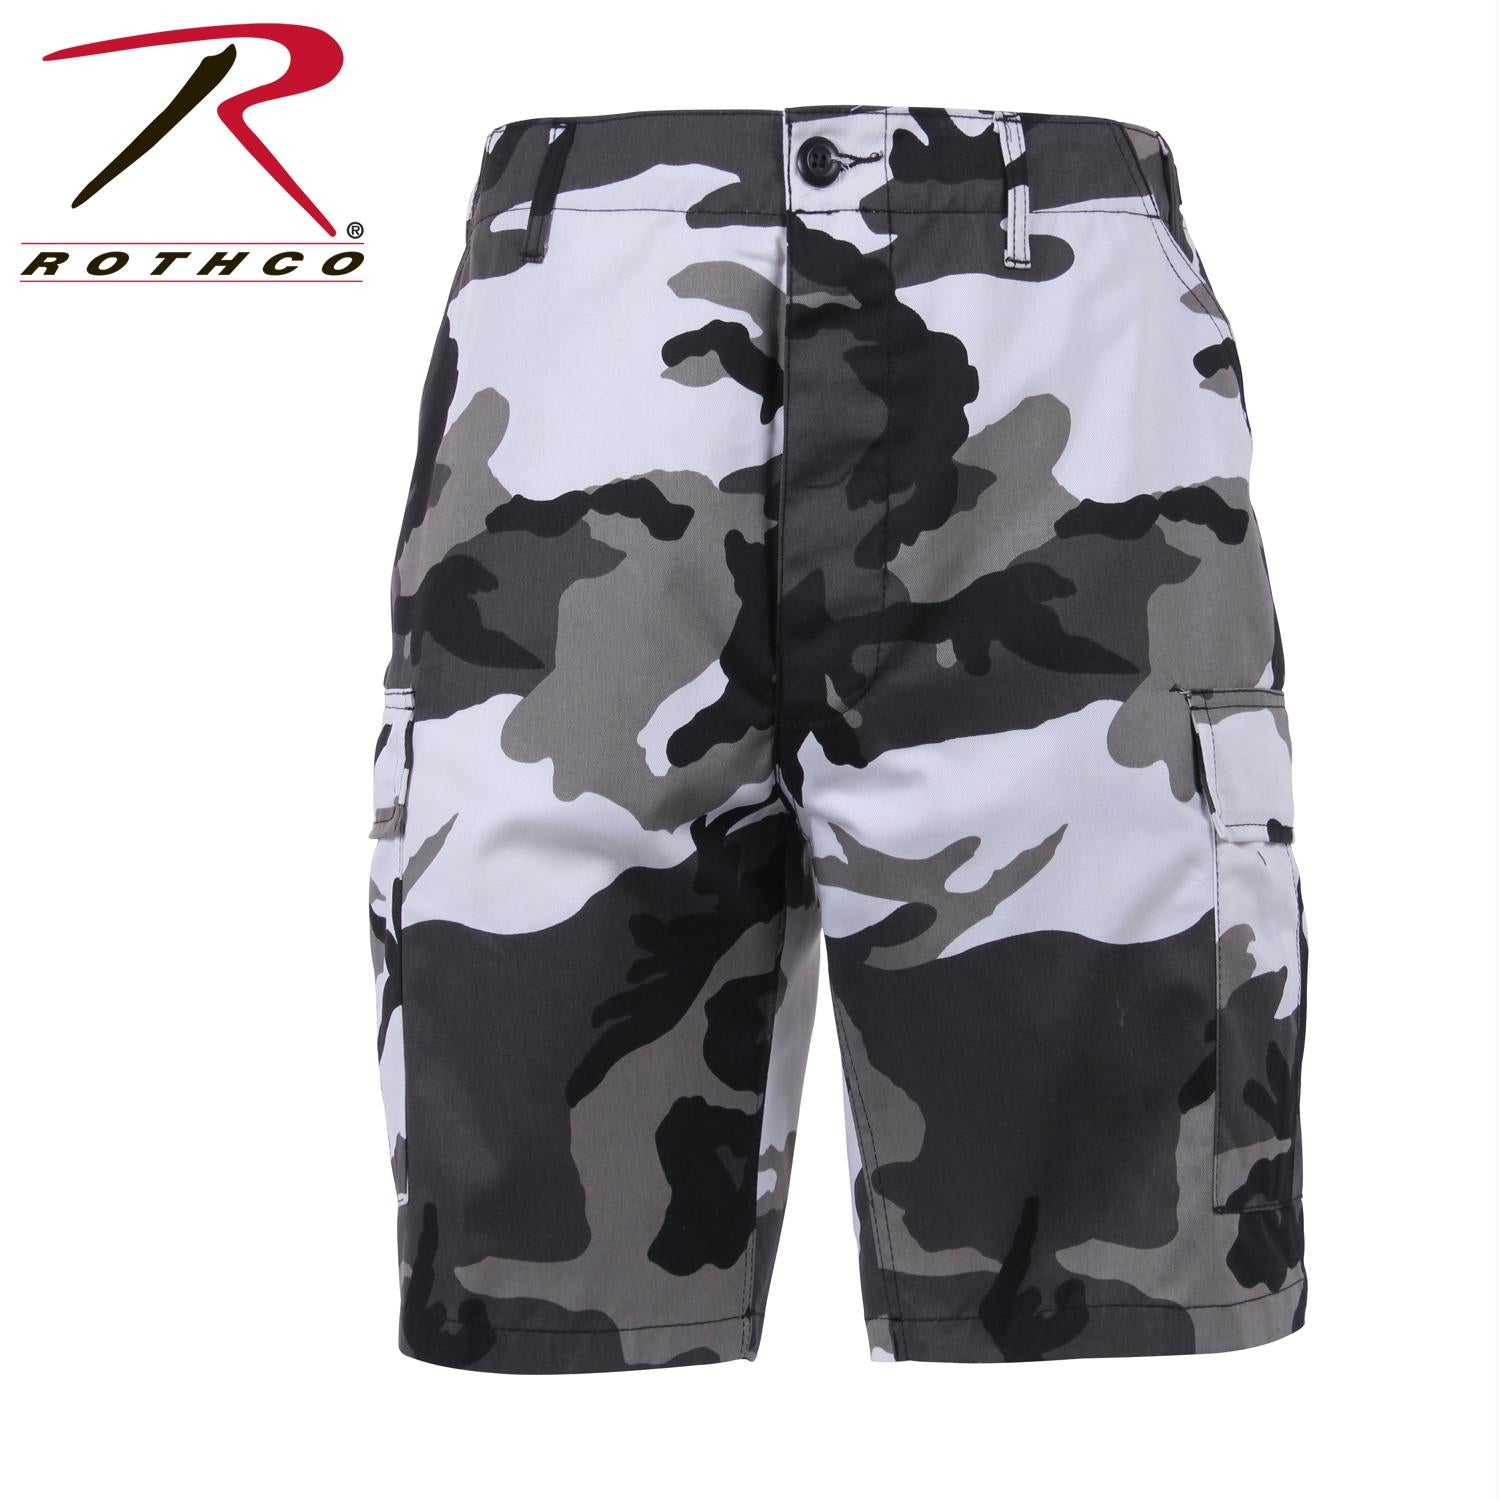 Rothco Colored Camo BDU Shorts - City Camo / 2XL